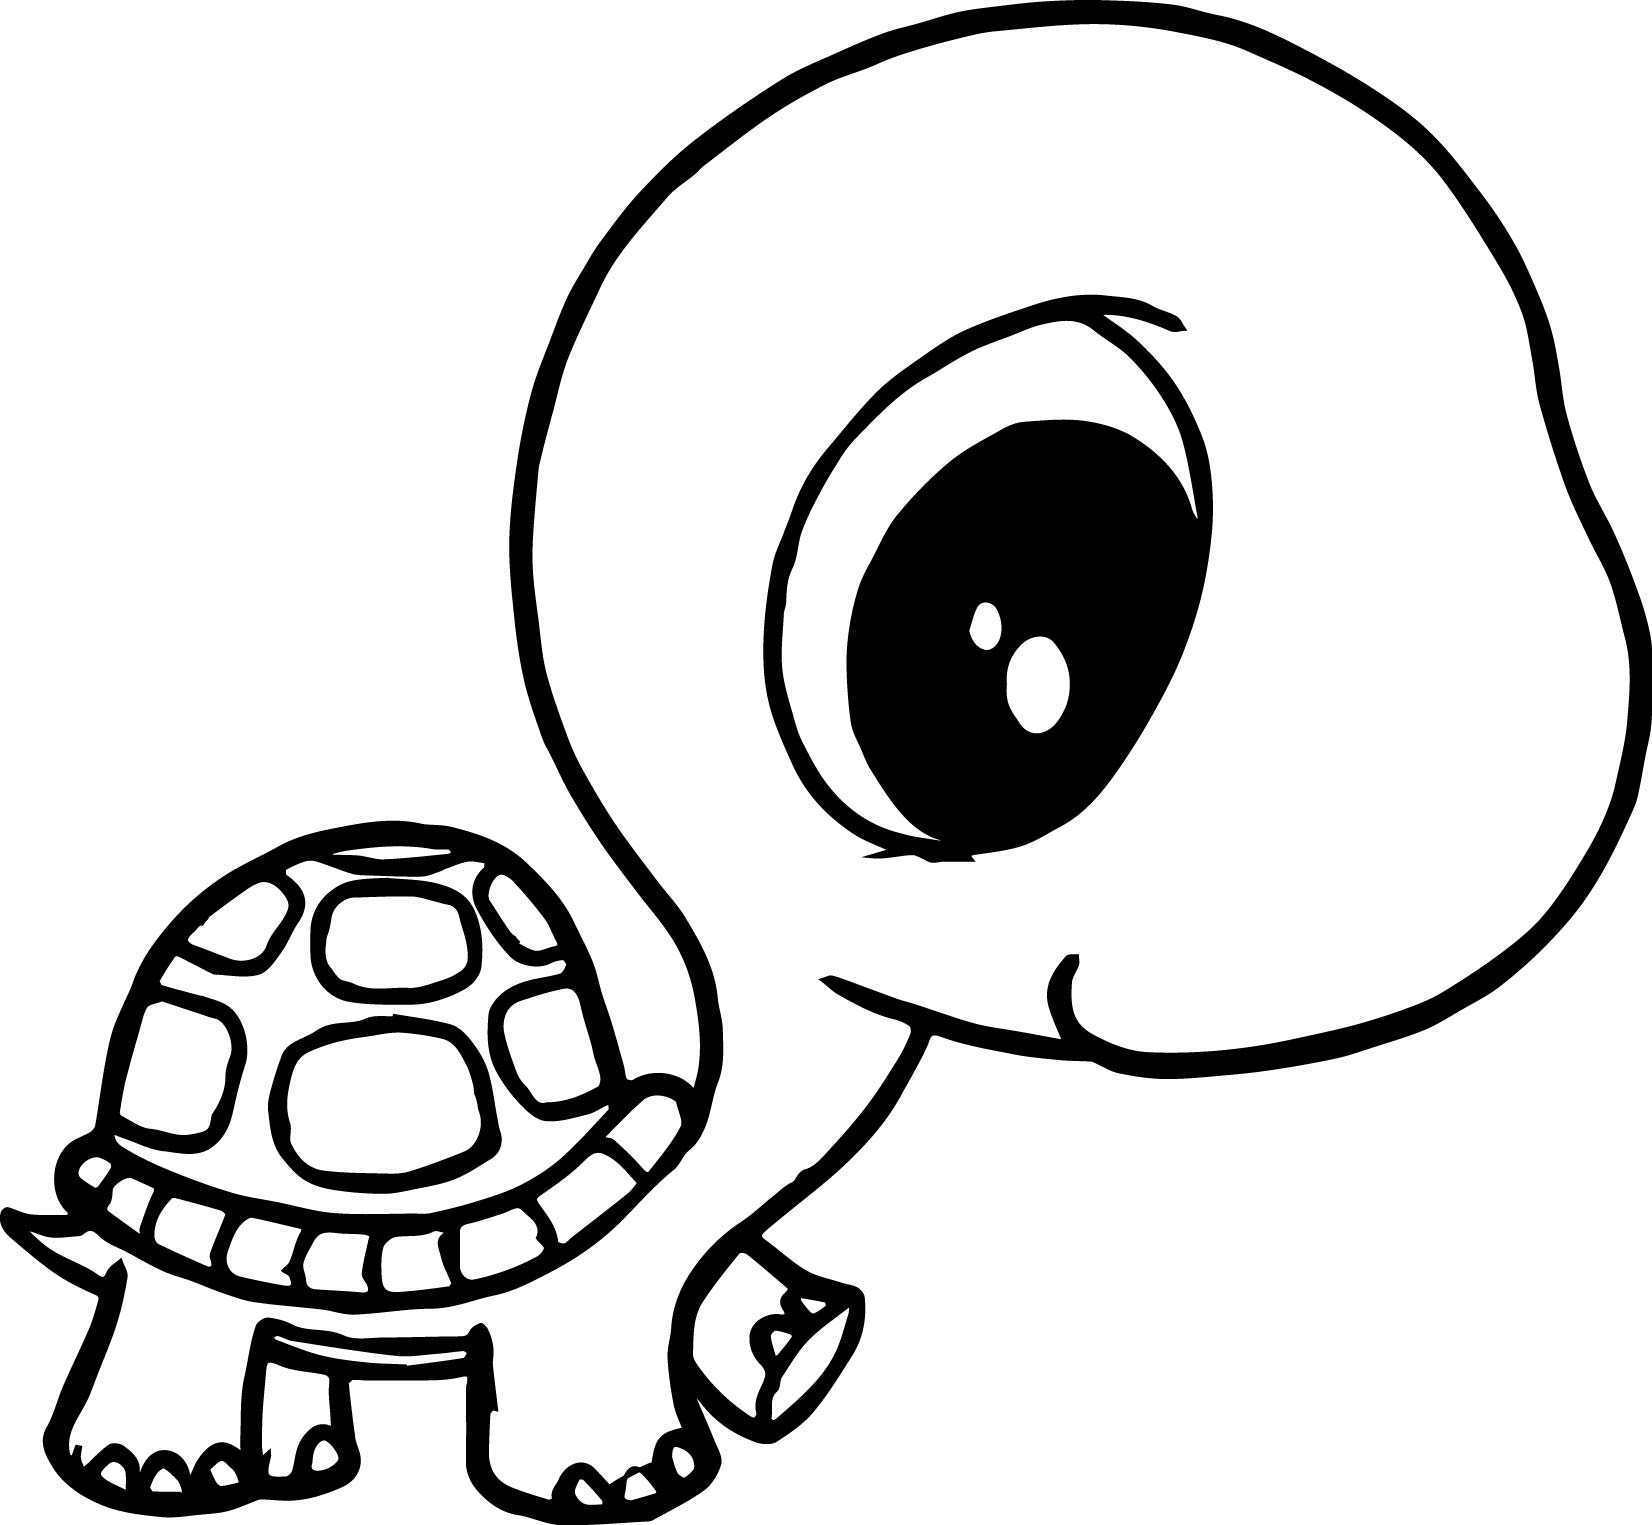 Big head small body tortoise turtle coloring page for Turtle coloring pages